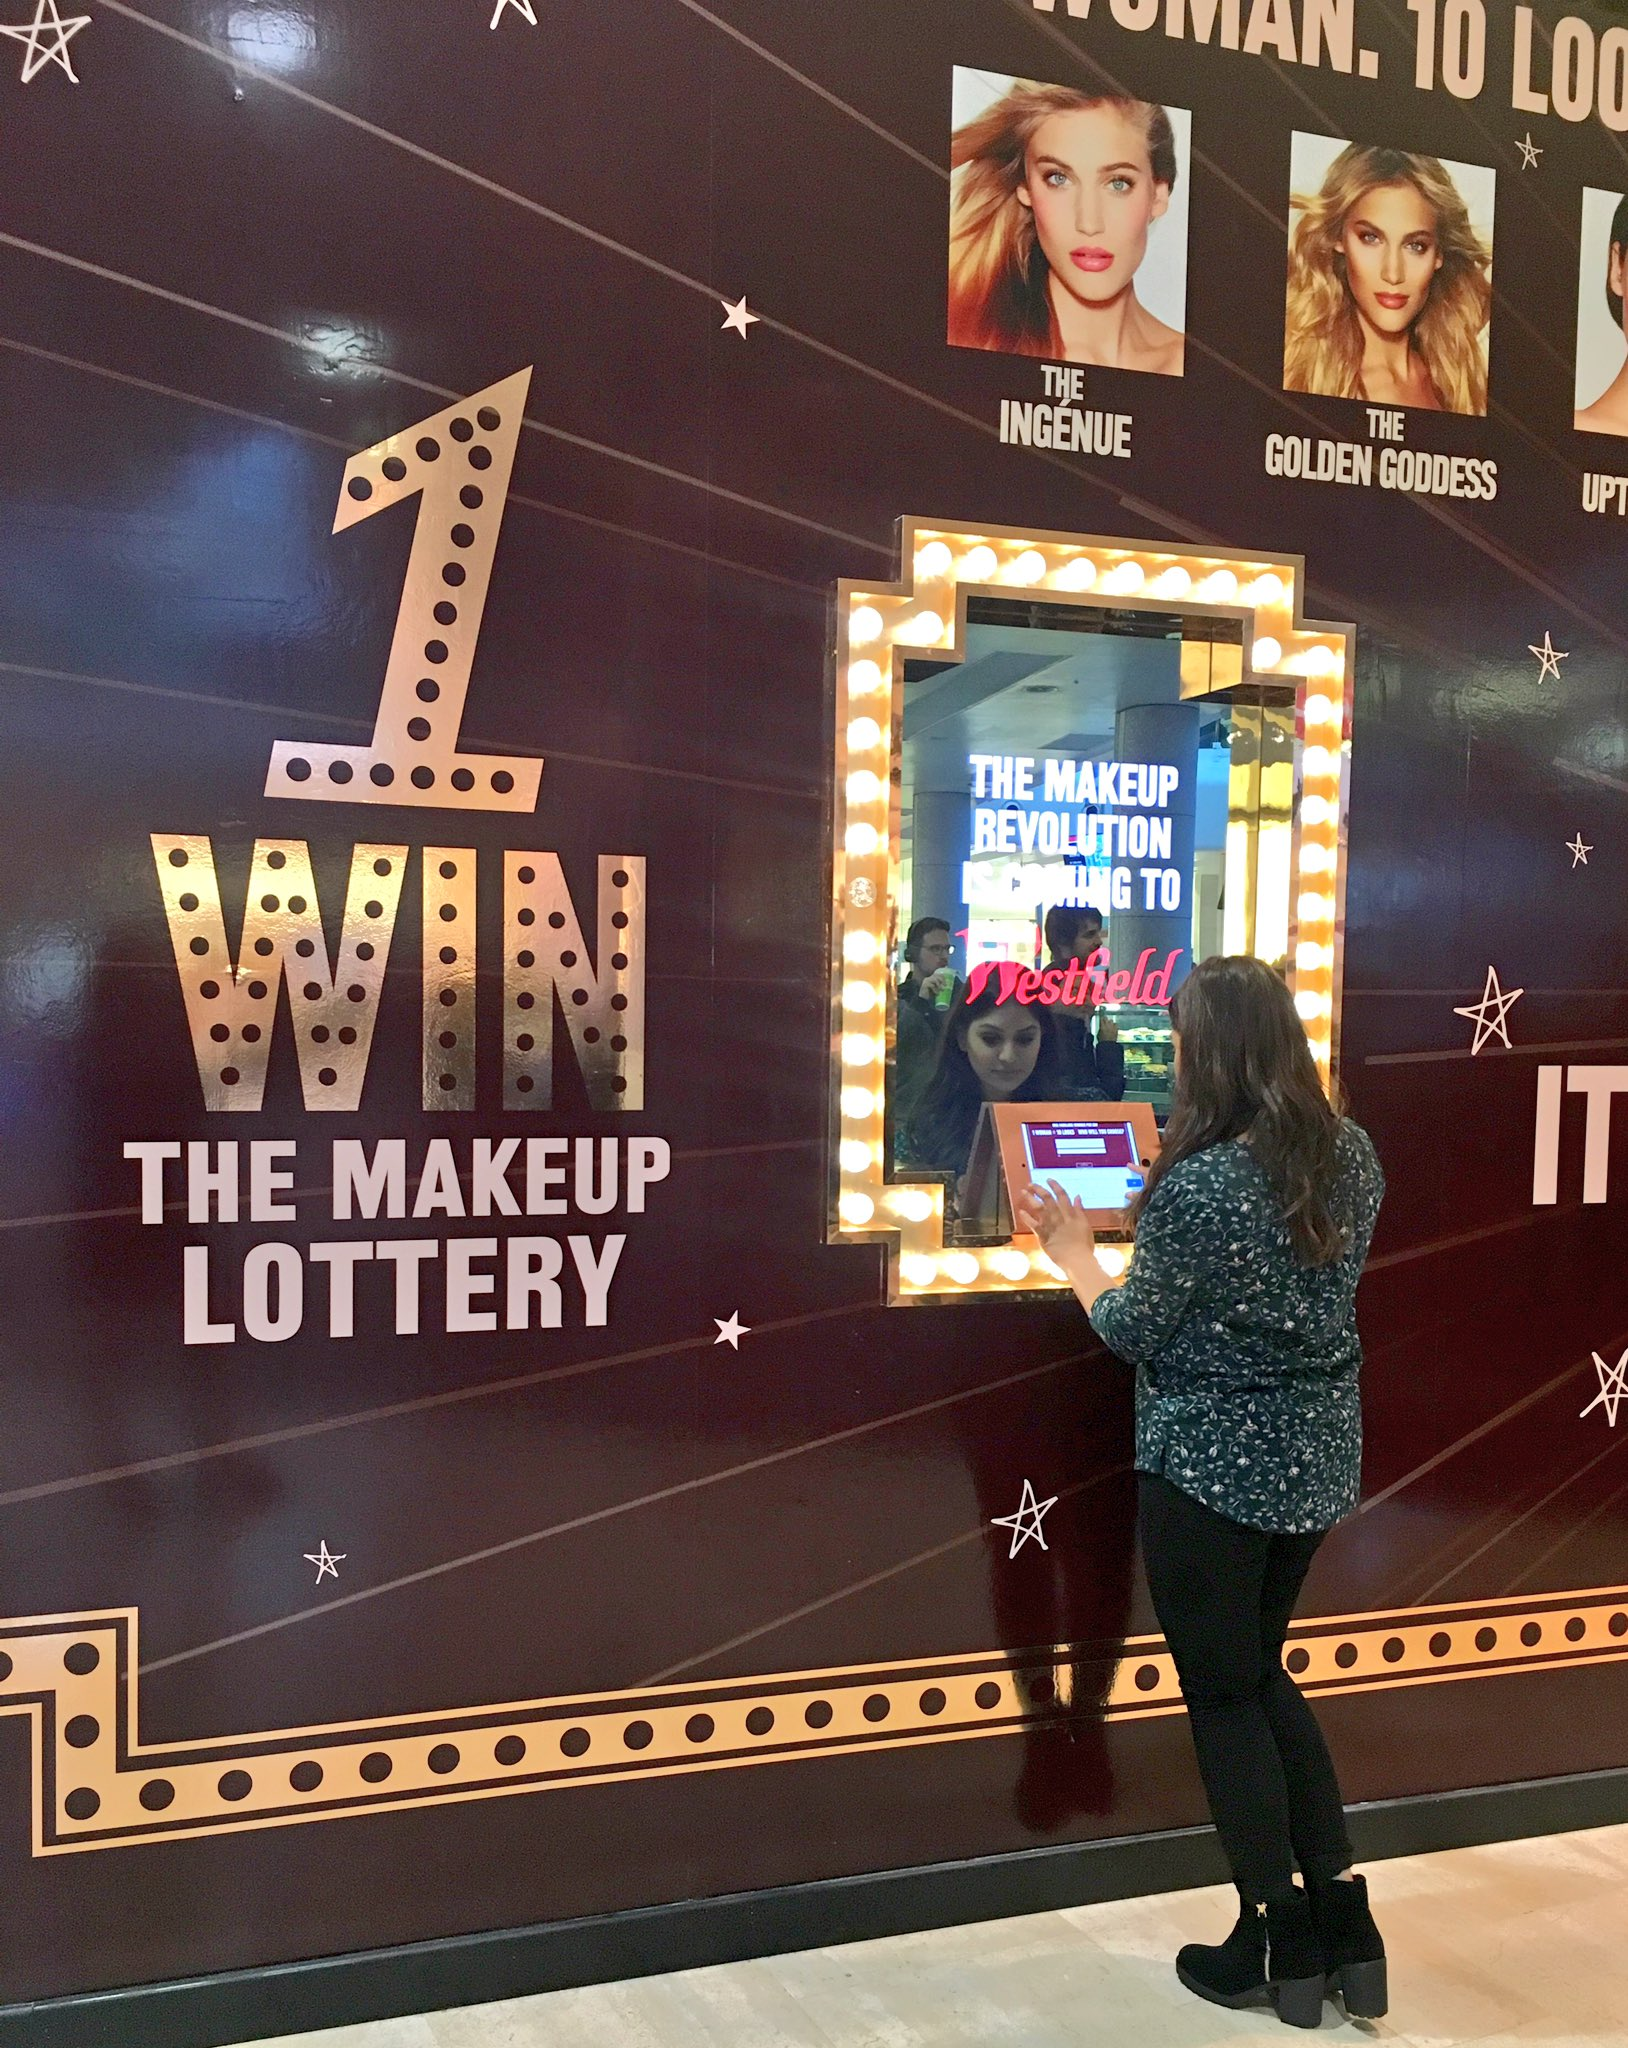 Play for your golden ticket now @westfieldlondon!! WIN the #CharlotteTilbury makeup lottery ✨ #WIN https://t.co/NwR7i7OuOF